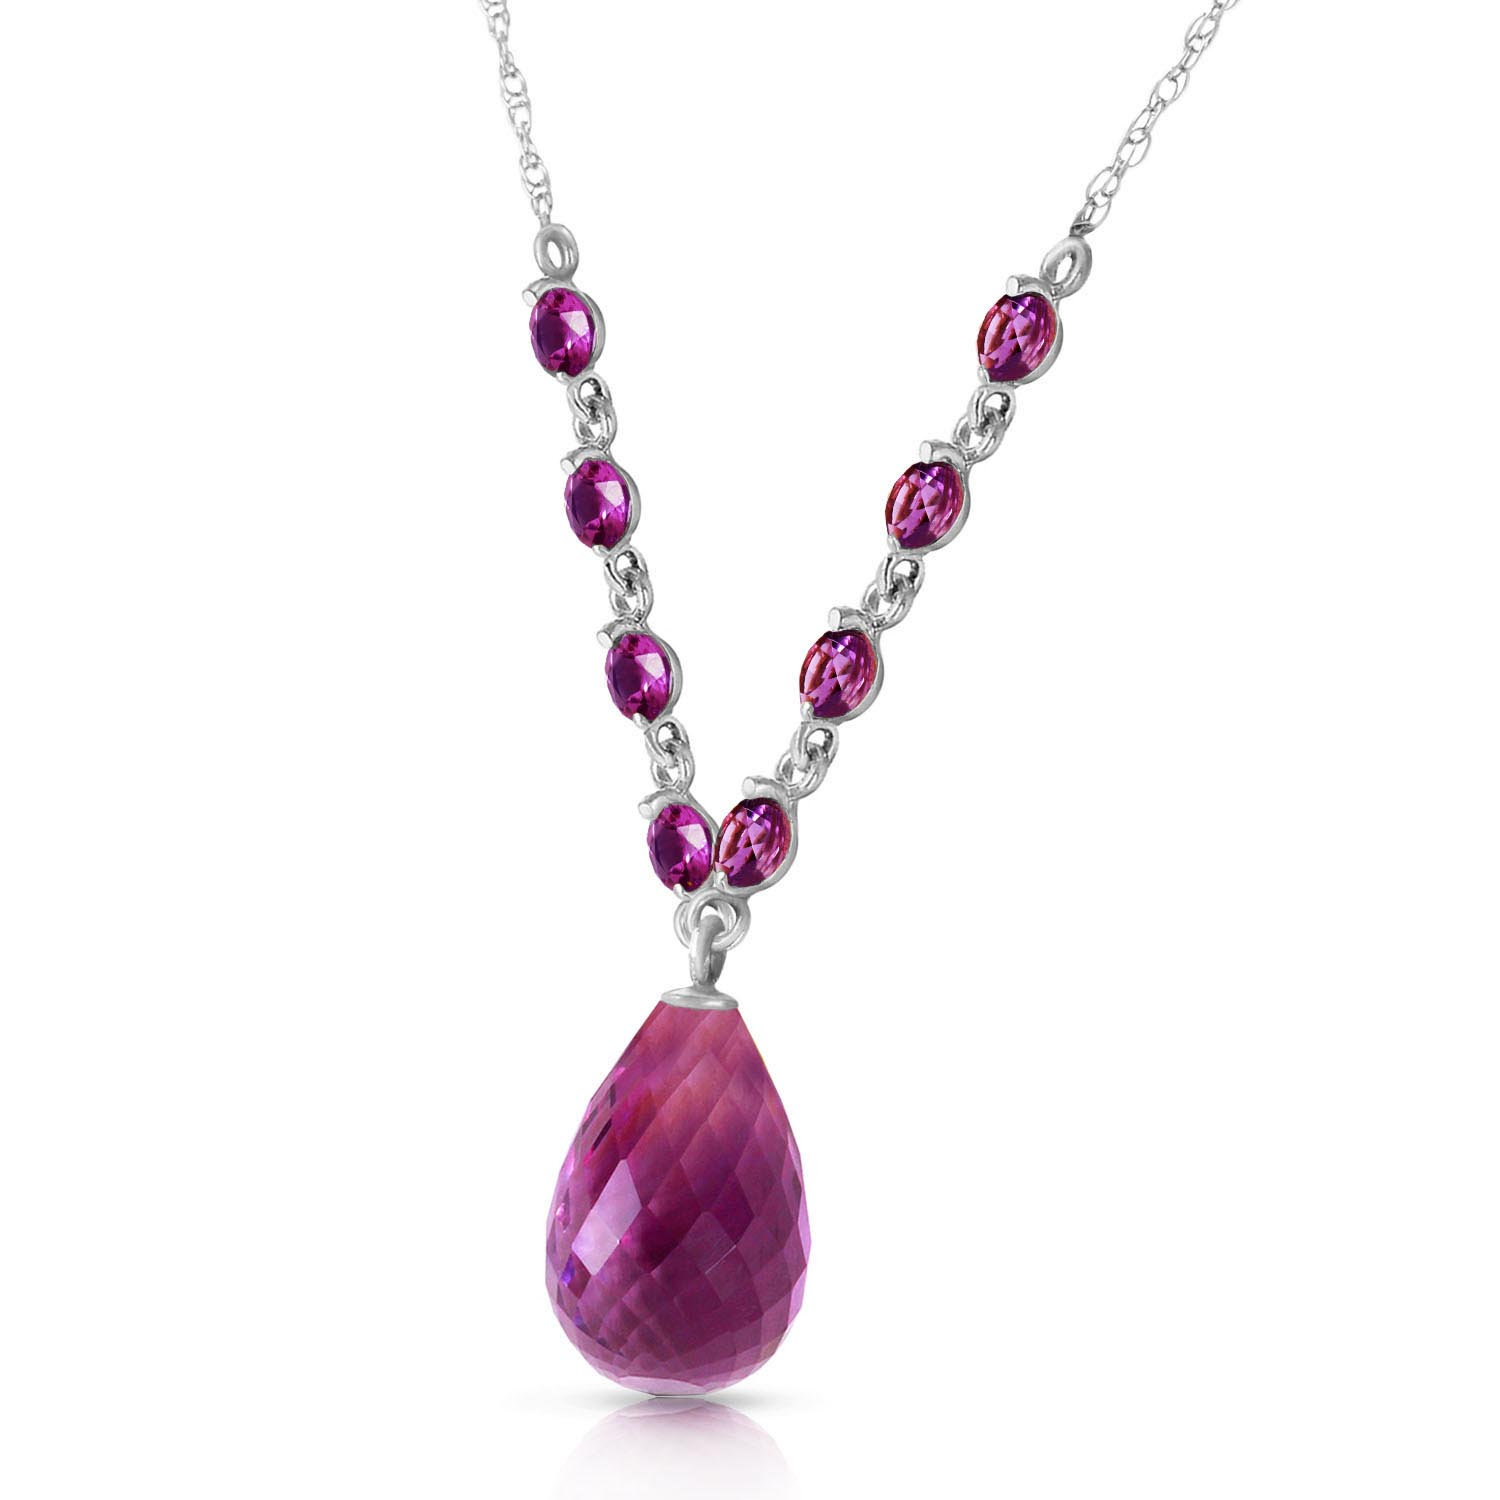 Amethyst Briolette Pendant Necklace 11.5ctw in 9ct White Gold